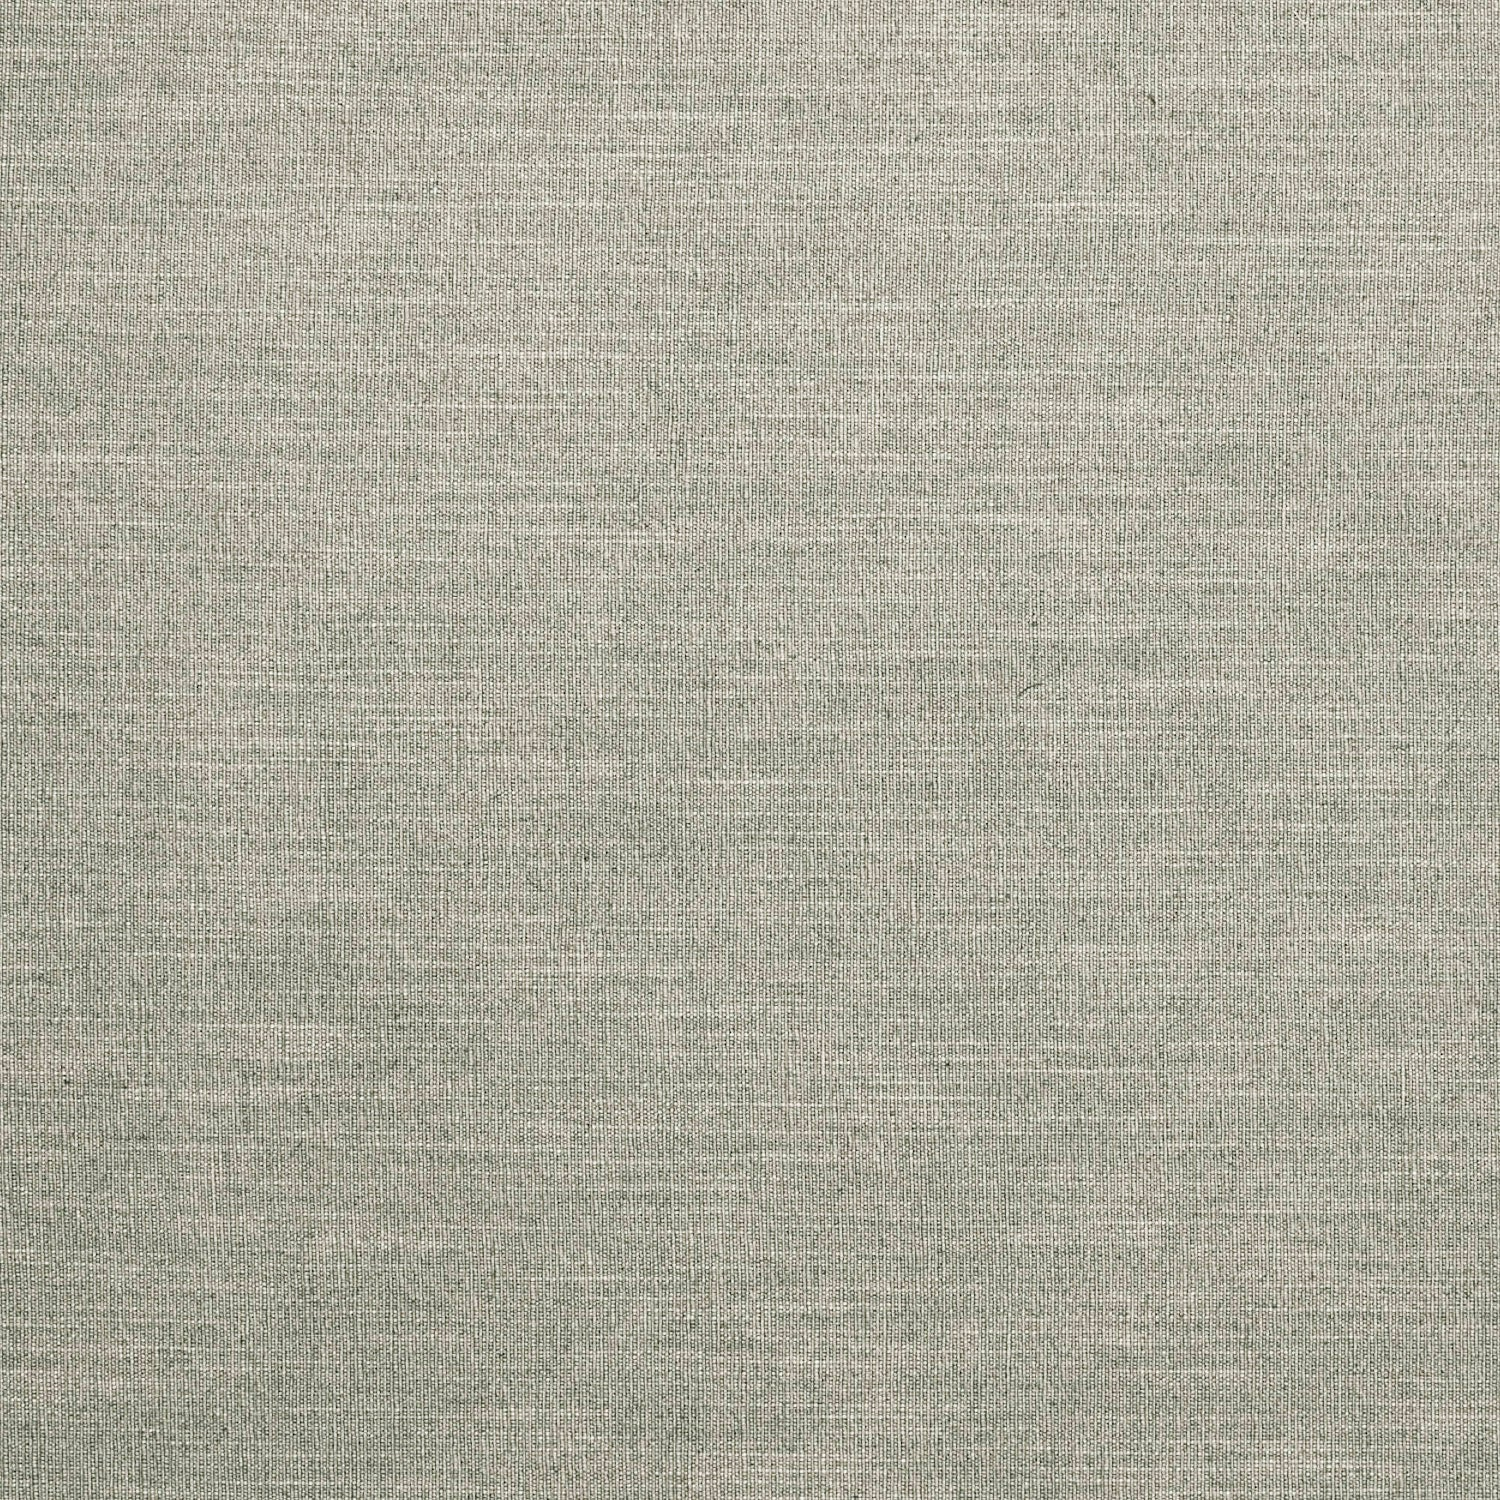 Light grey plain linen blend fabric suitable for curtains and upholstery